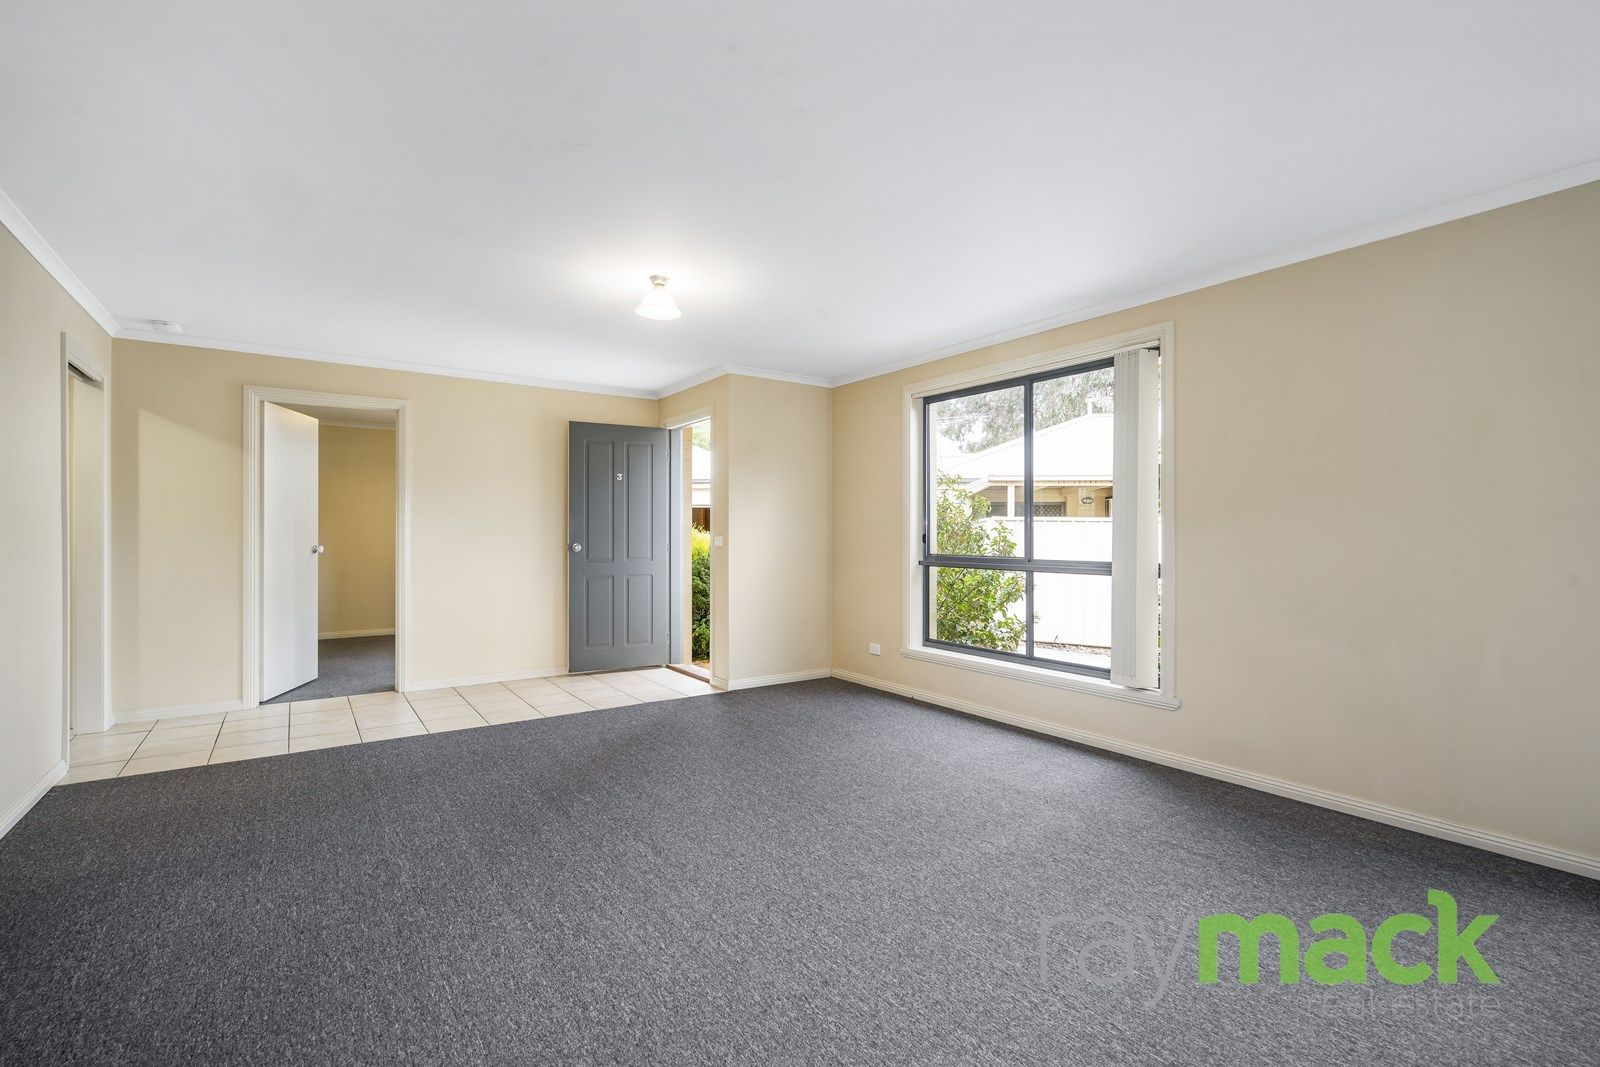 3/25 Tallowwood Street, Thurgoona NSW 2640, Image 2